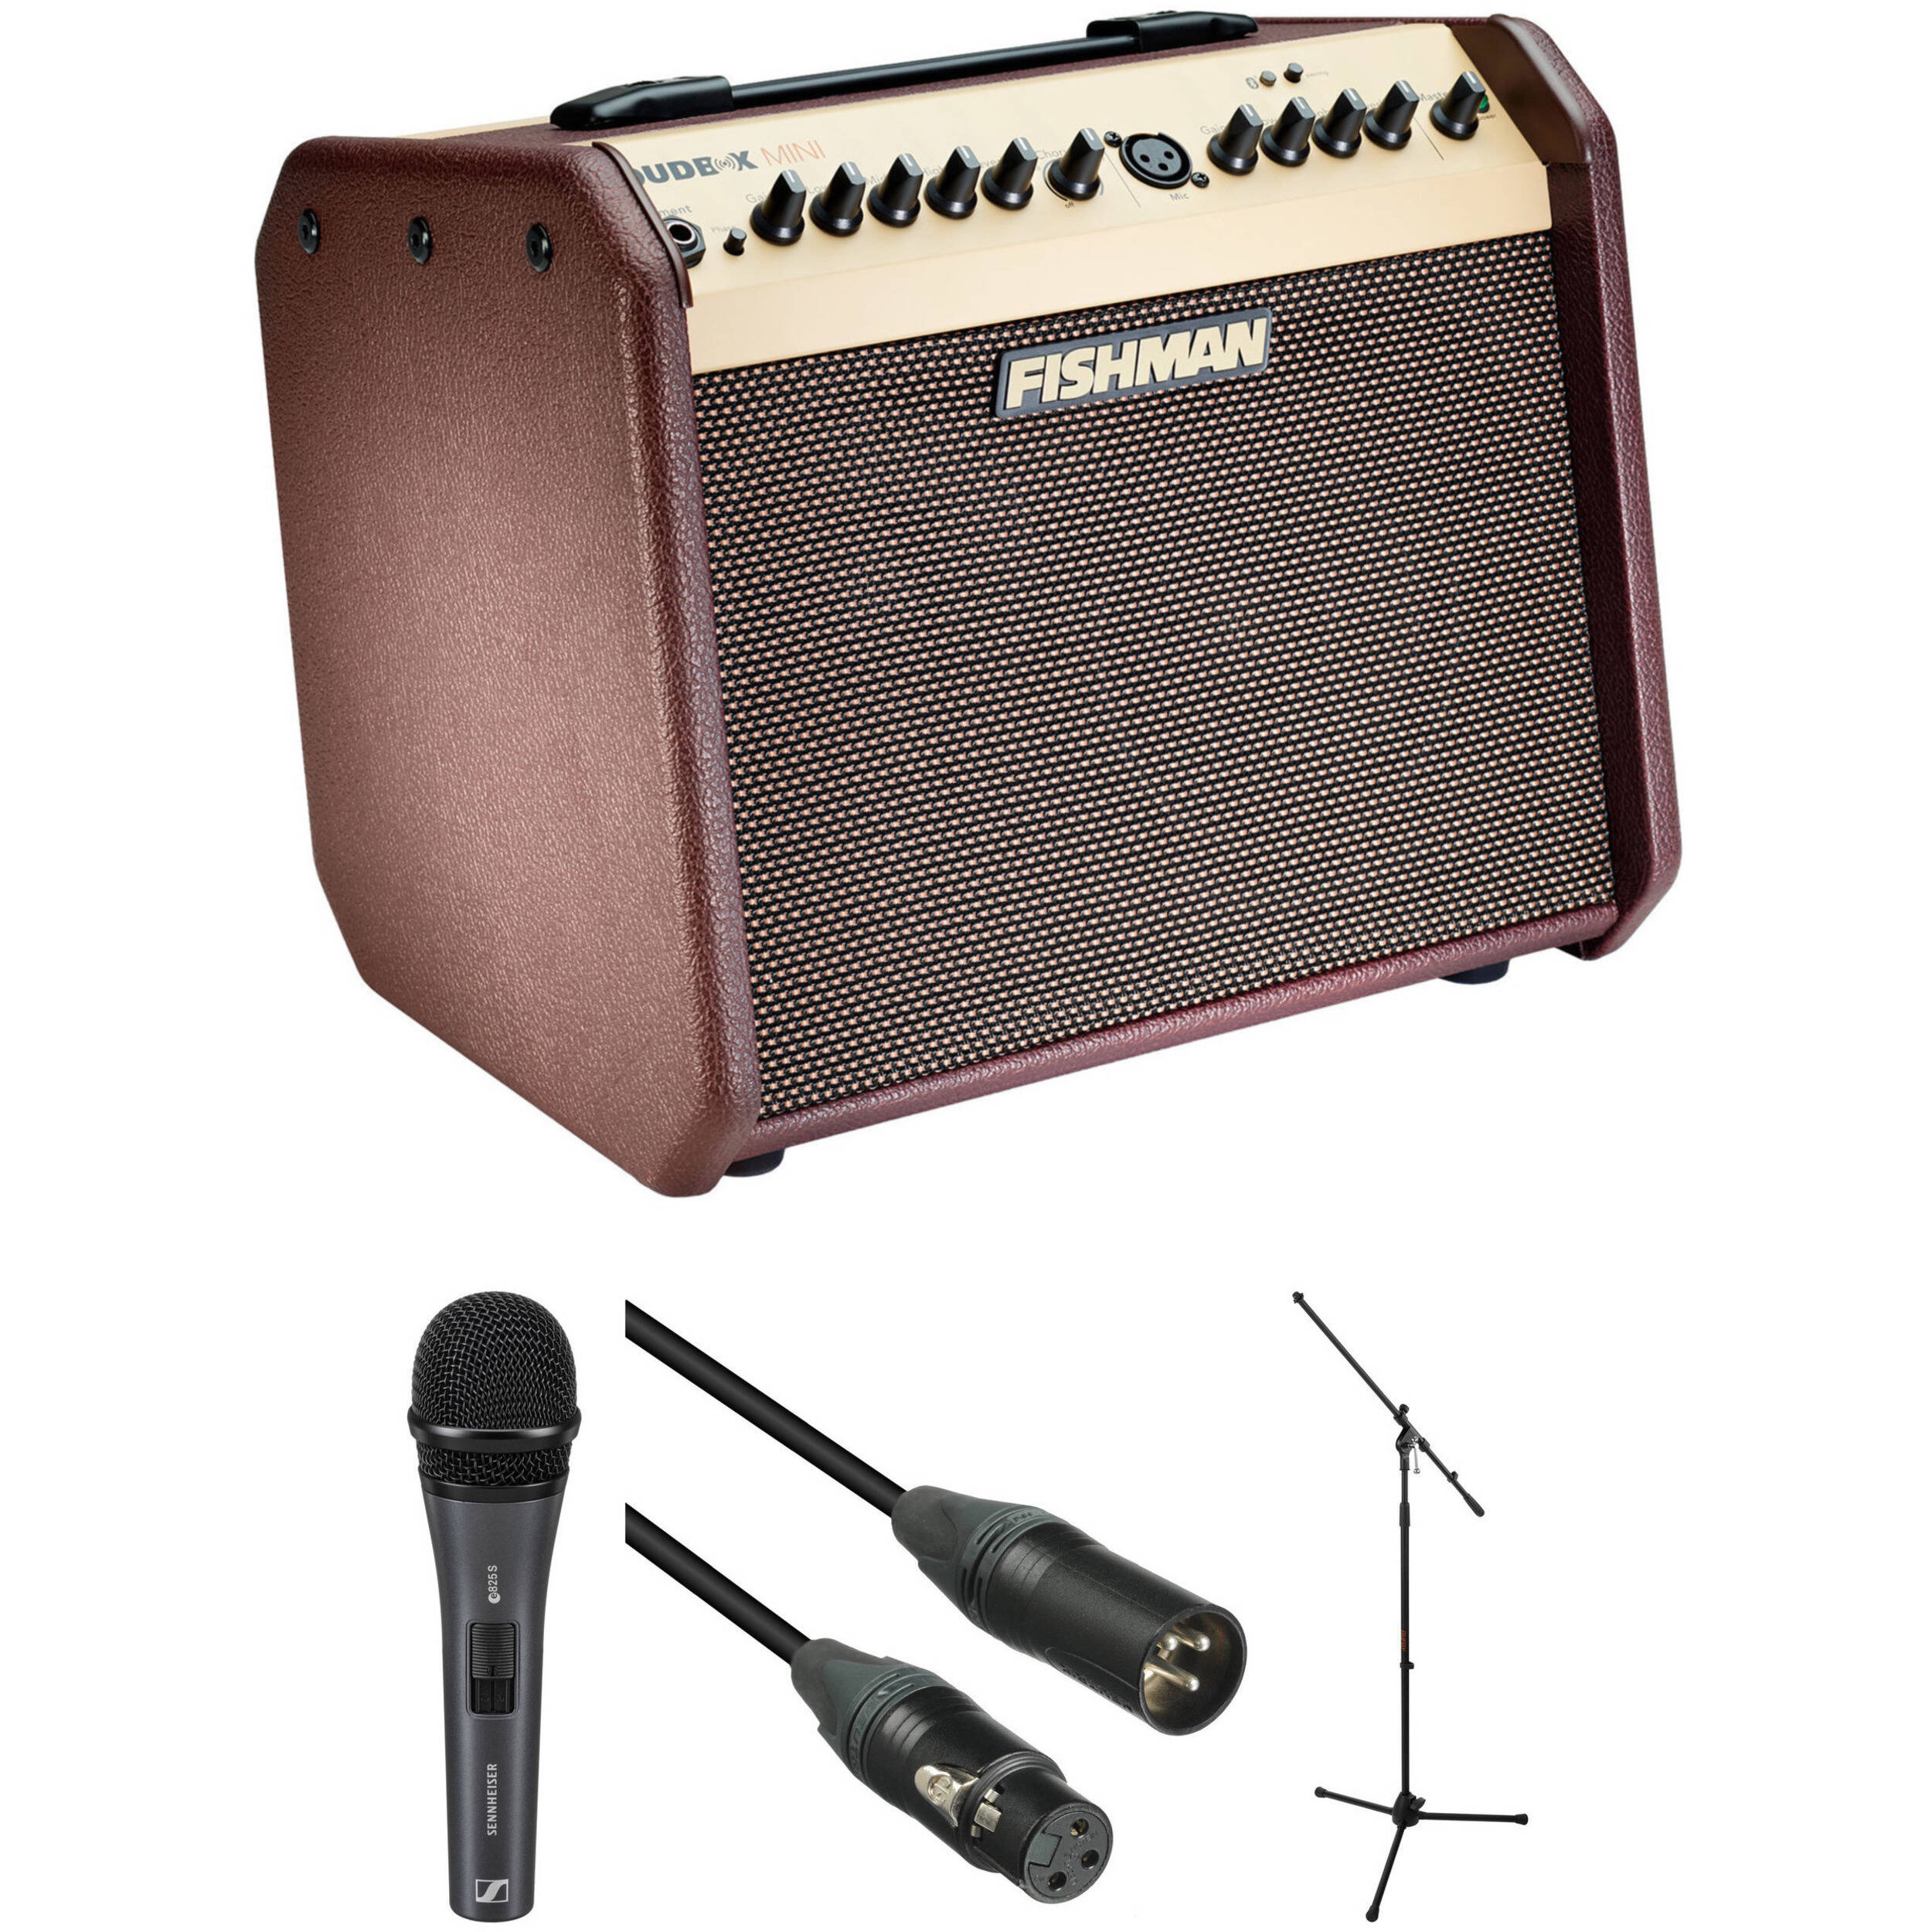 fishman loudbox mini bluetooth amplifier kit with sennheiser. Black Bedroom Furniture Sets. Home Design Ideas